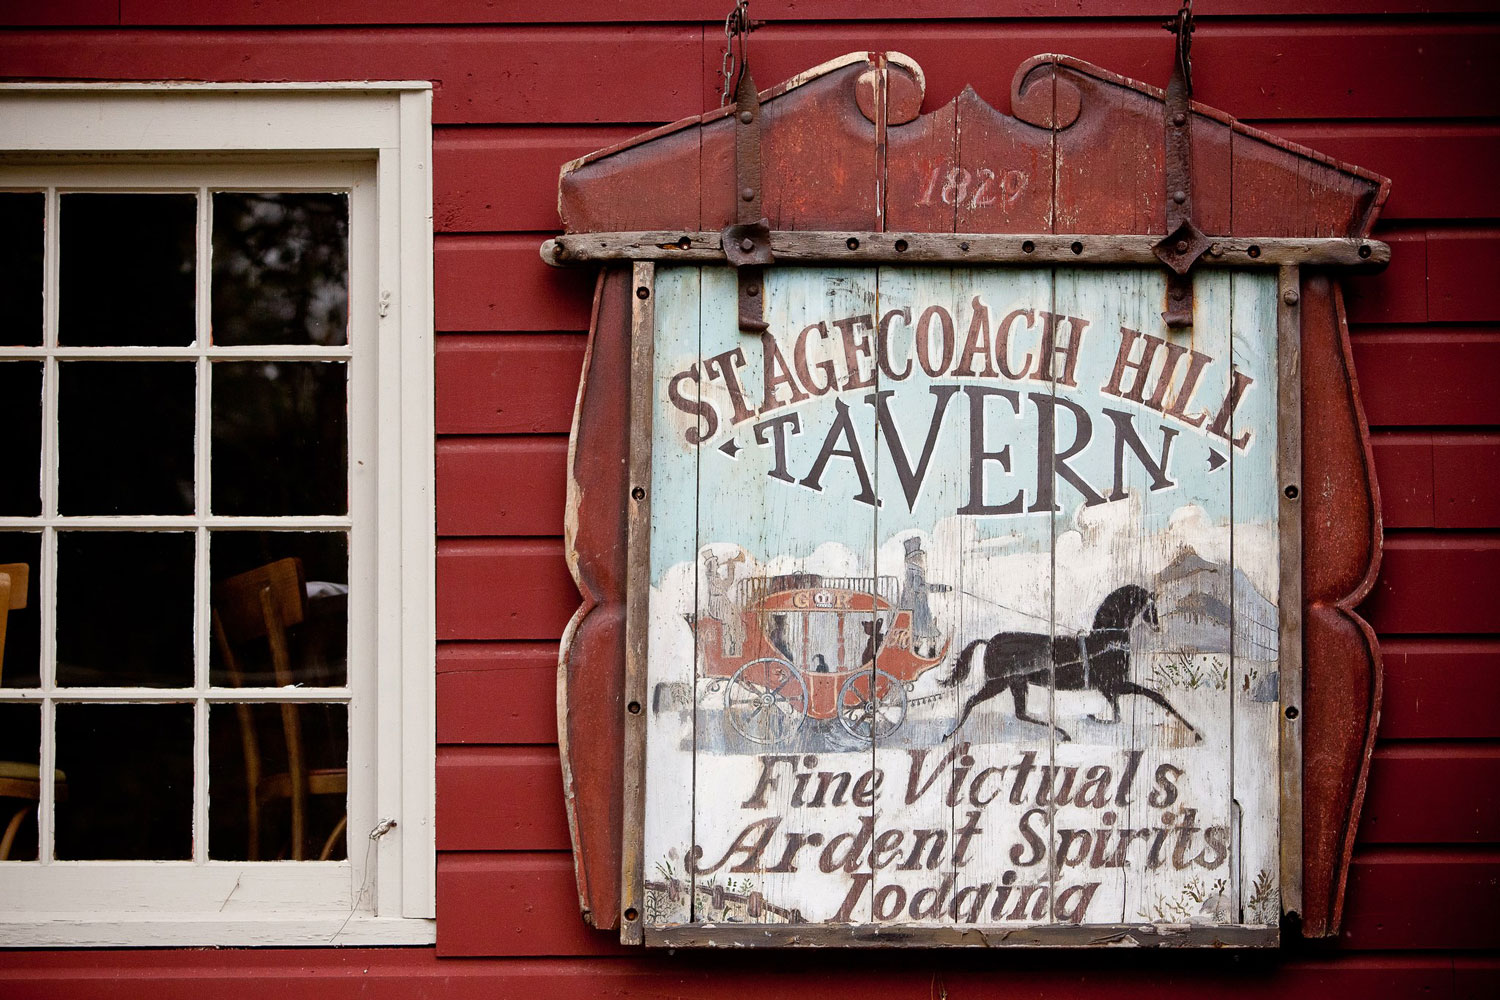 The Stagecoach Tavern sign (since 1829)